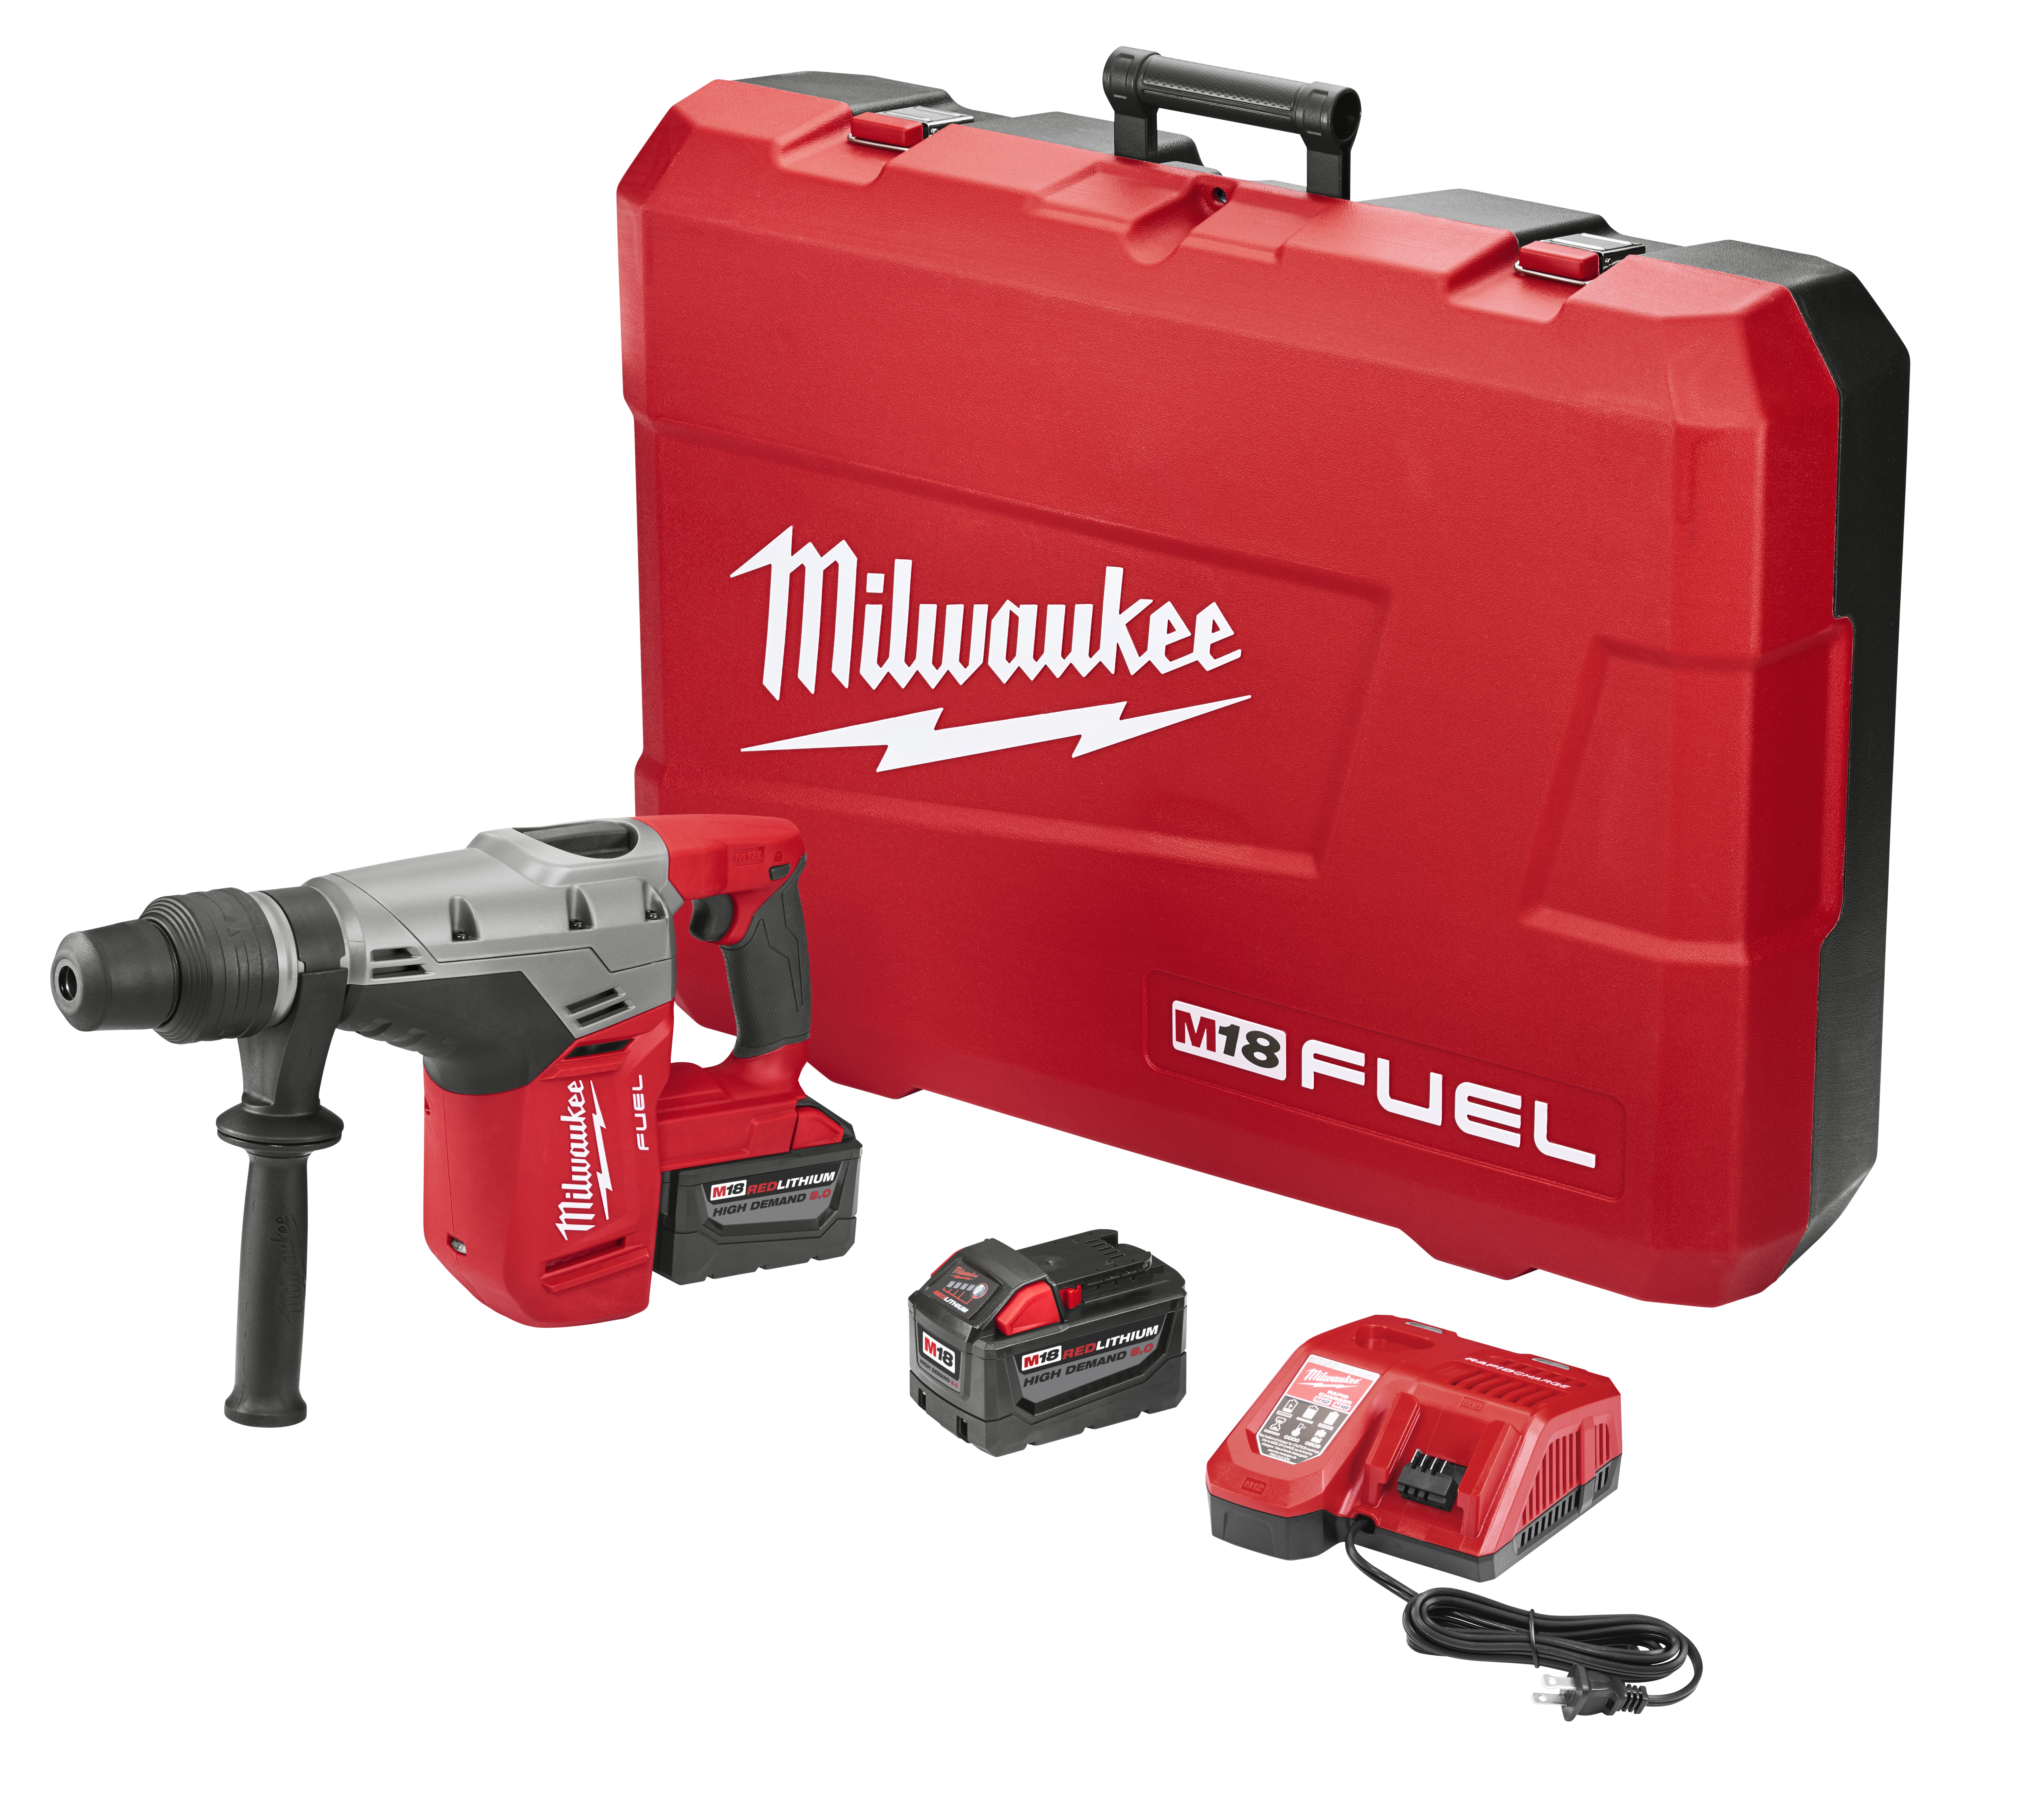 Milwaukee® M18 FUEL™ 2717-22HD Cordless Rotary Hammer Kit, 1-9/16 in SDS Max® Chuck, 18 VDC, 0 to 3000 rpm No-Load, M18™ REDLITHIUM™ Lithium-Ion Battery